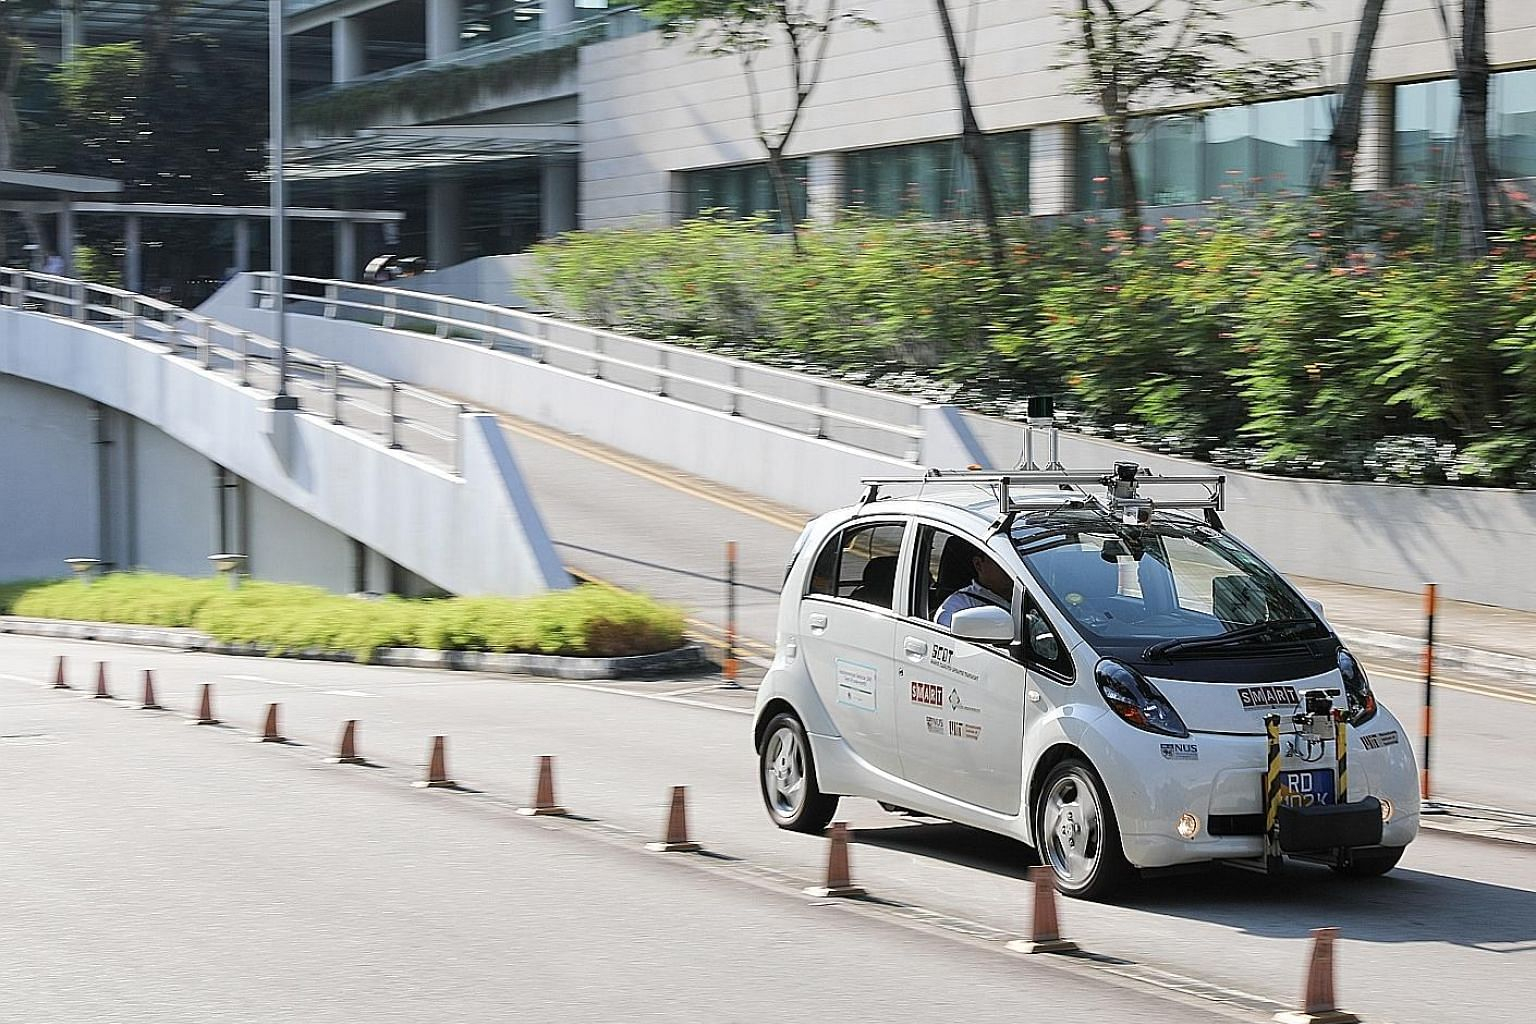 A self-driving electric vehicle by the Singapore-MIT Alliance for Research and Technology being tested on the road at the National University of Singapore. Having access to more public roads would give researchers more scenarios and environments to w